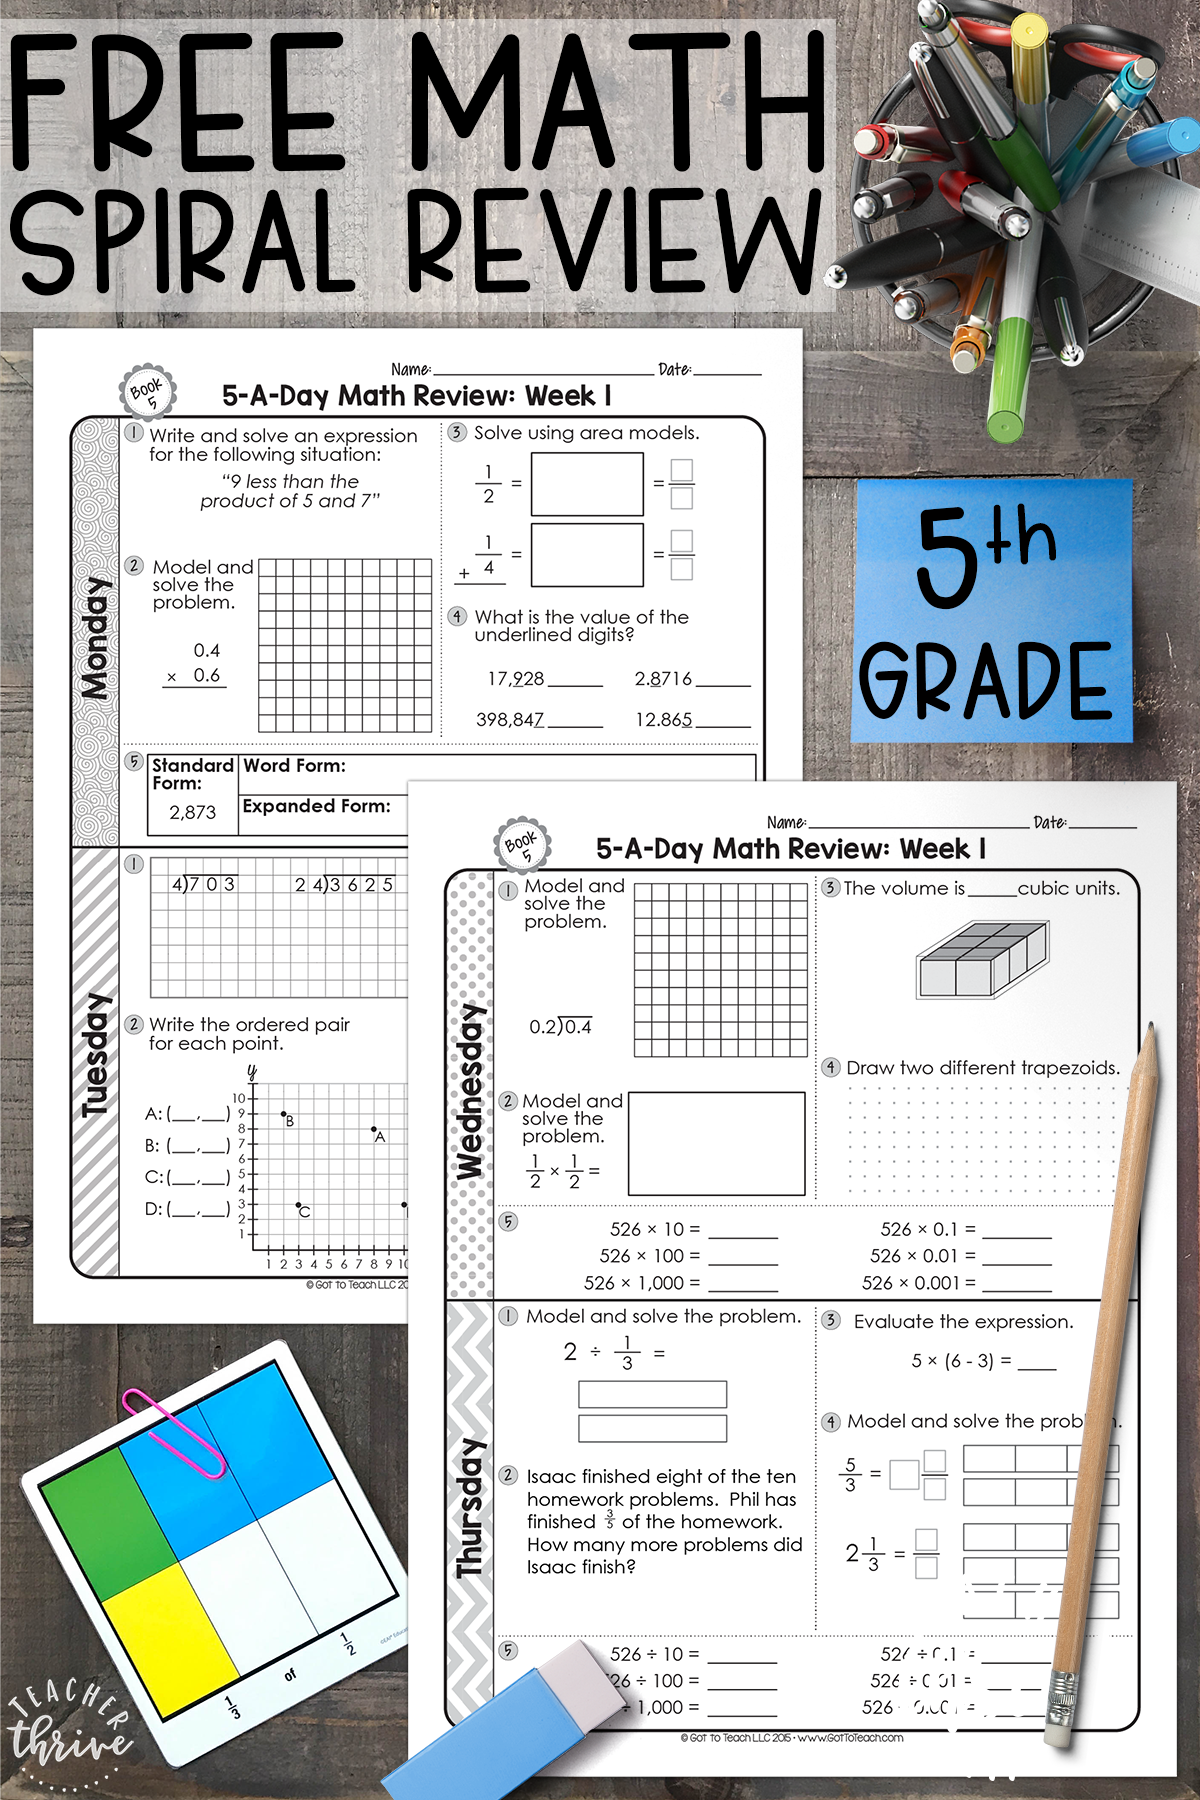 Free 5th Grade Daily Math Spiral Review